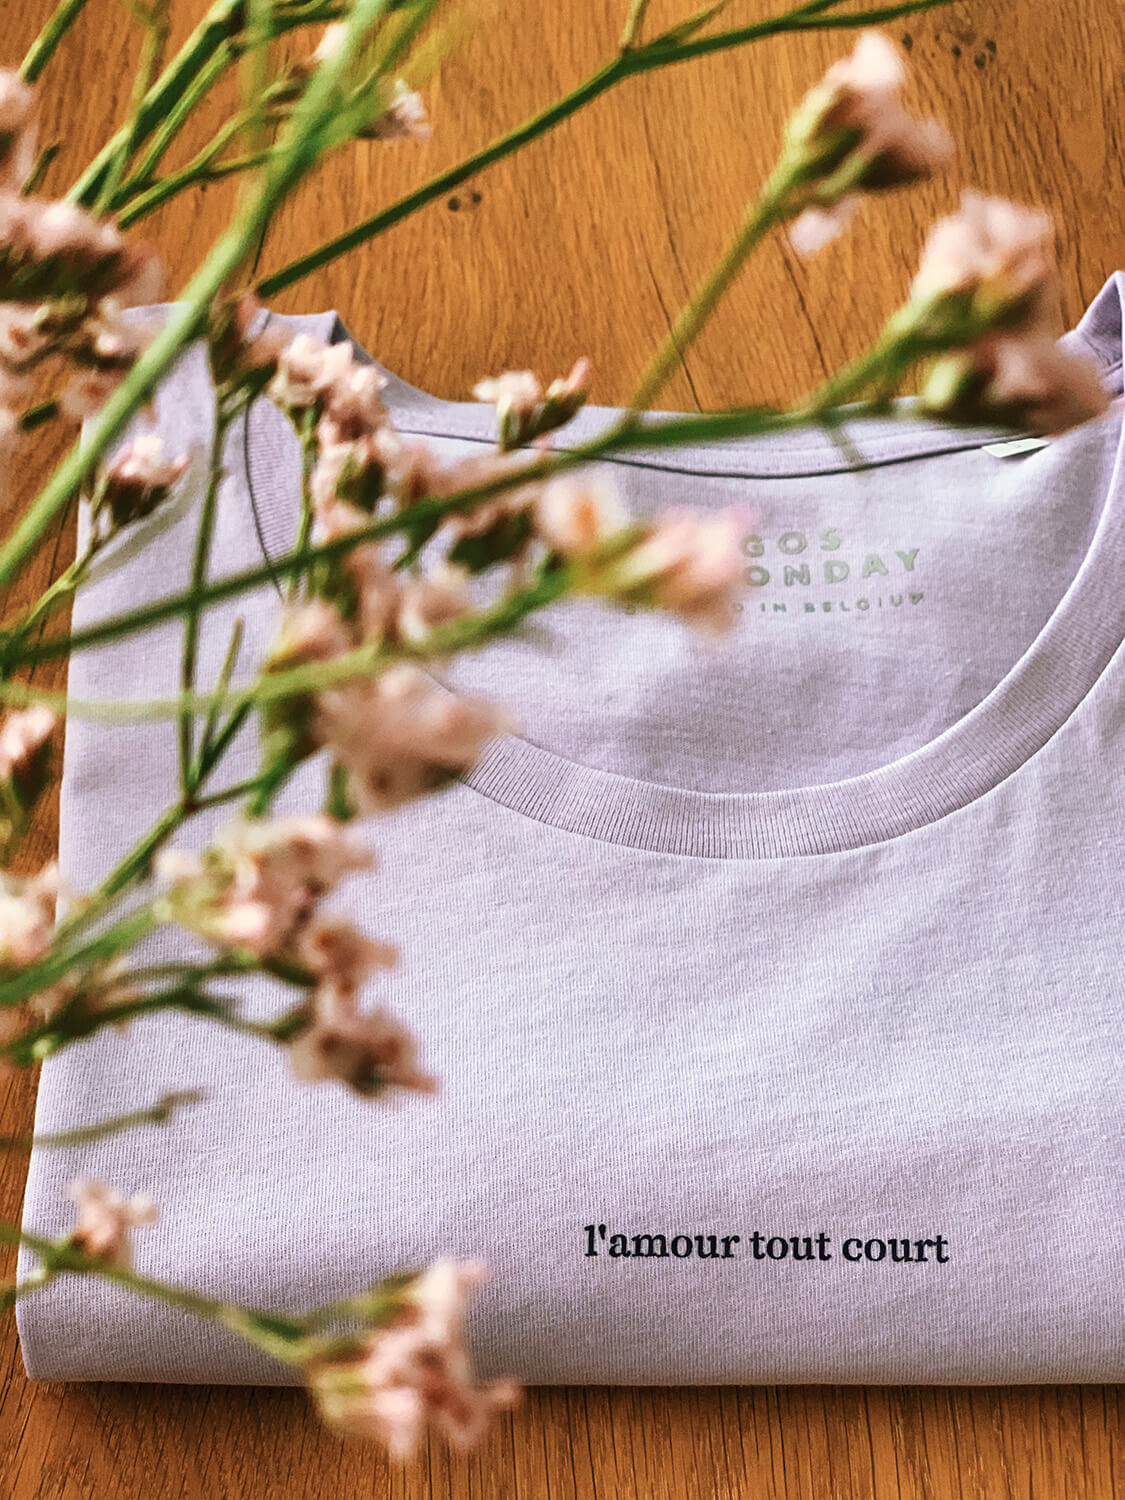 l'amour tout court t-shirt by Mangos on Monday